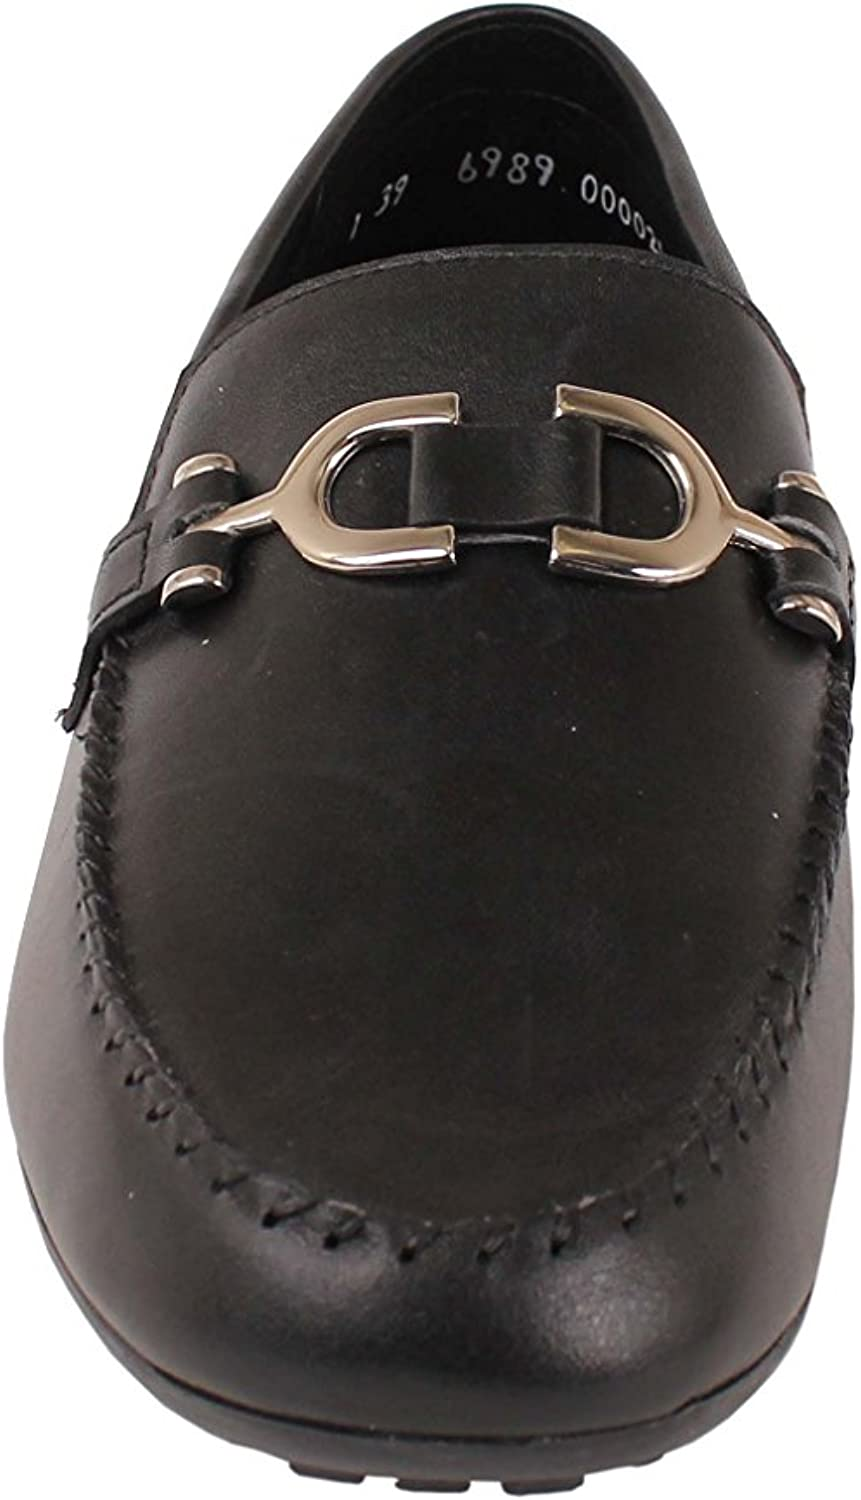 Zadas Boys Casual Dress Shoes 703 Black Leather Loafers with Buckle Footwear